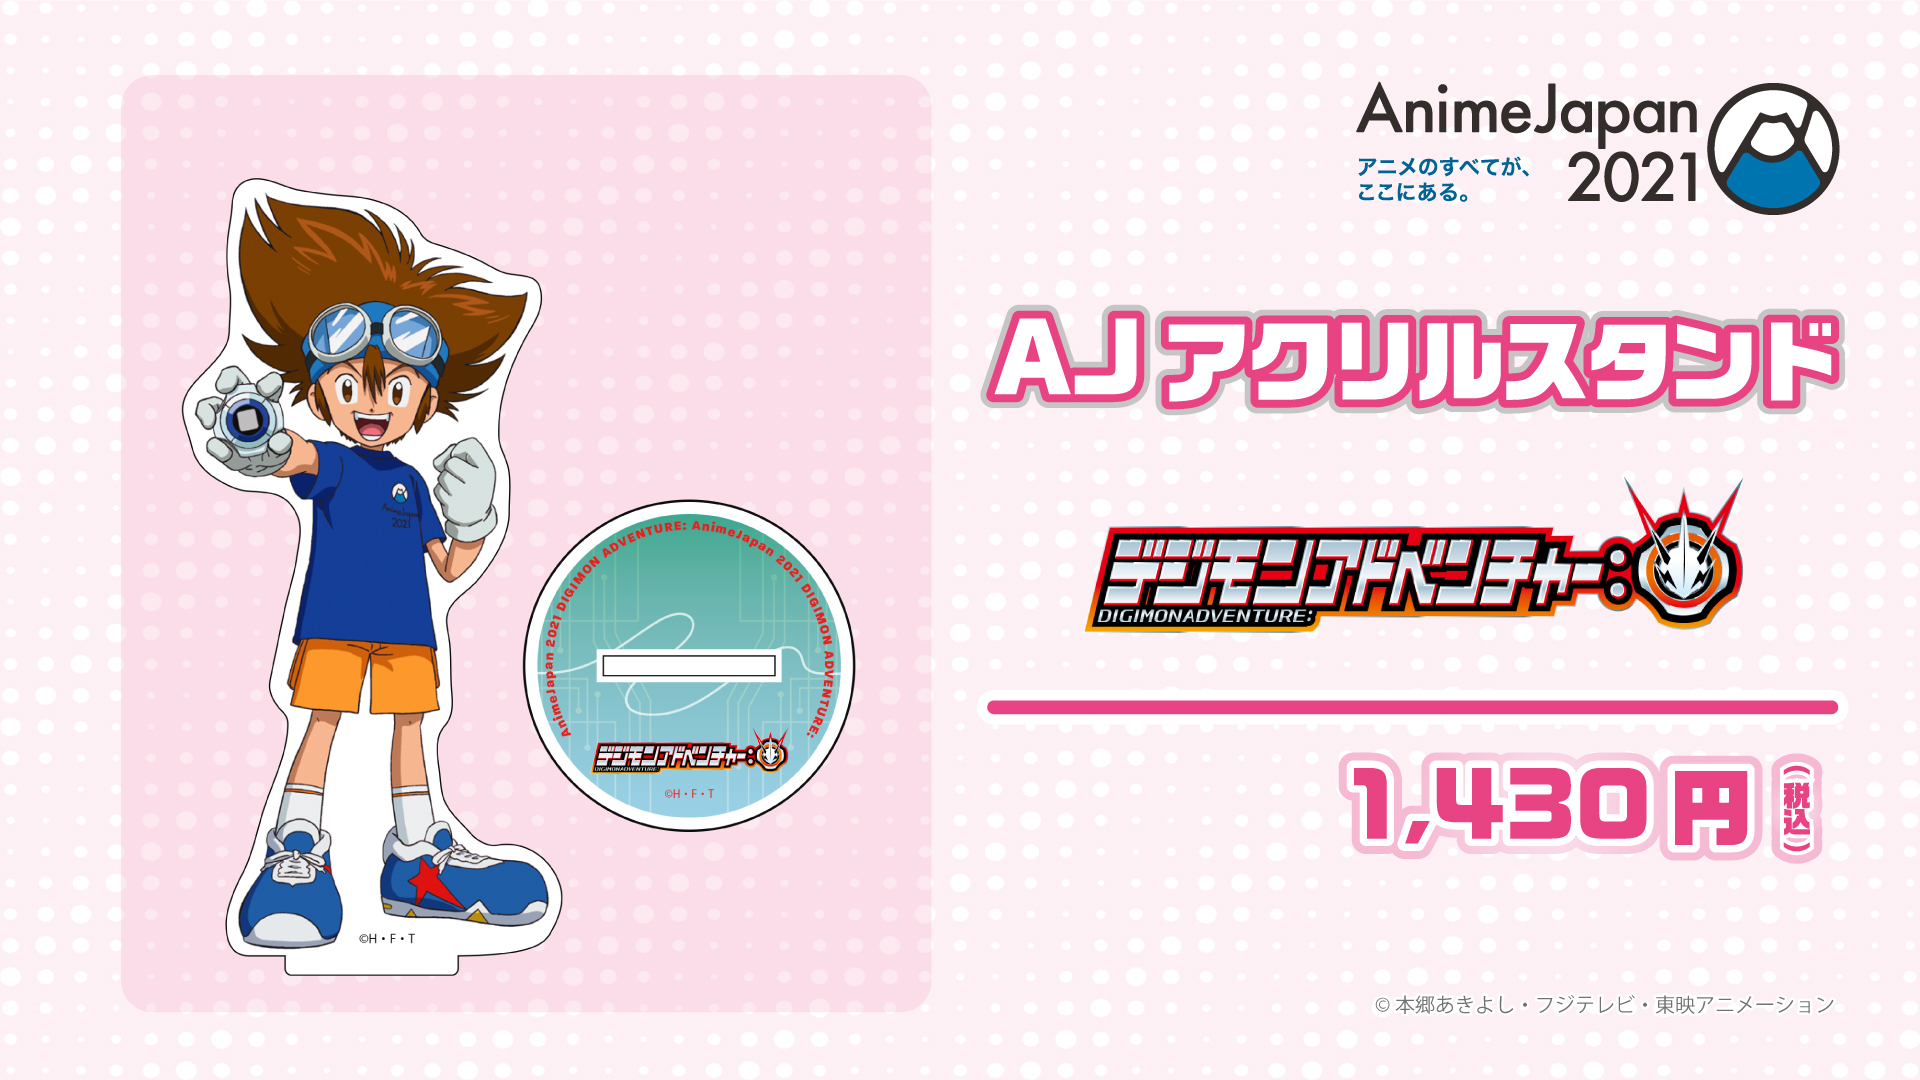 animejapan2021_acrylicstand0_march24_2021.jpg